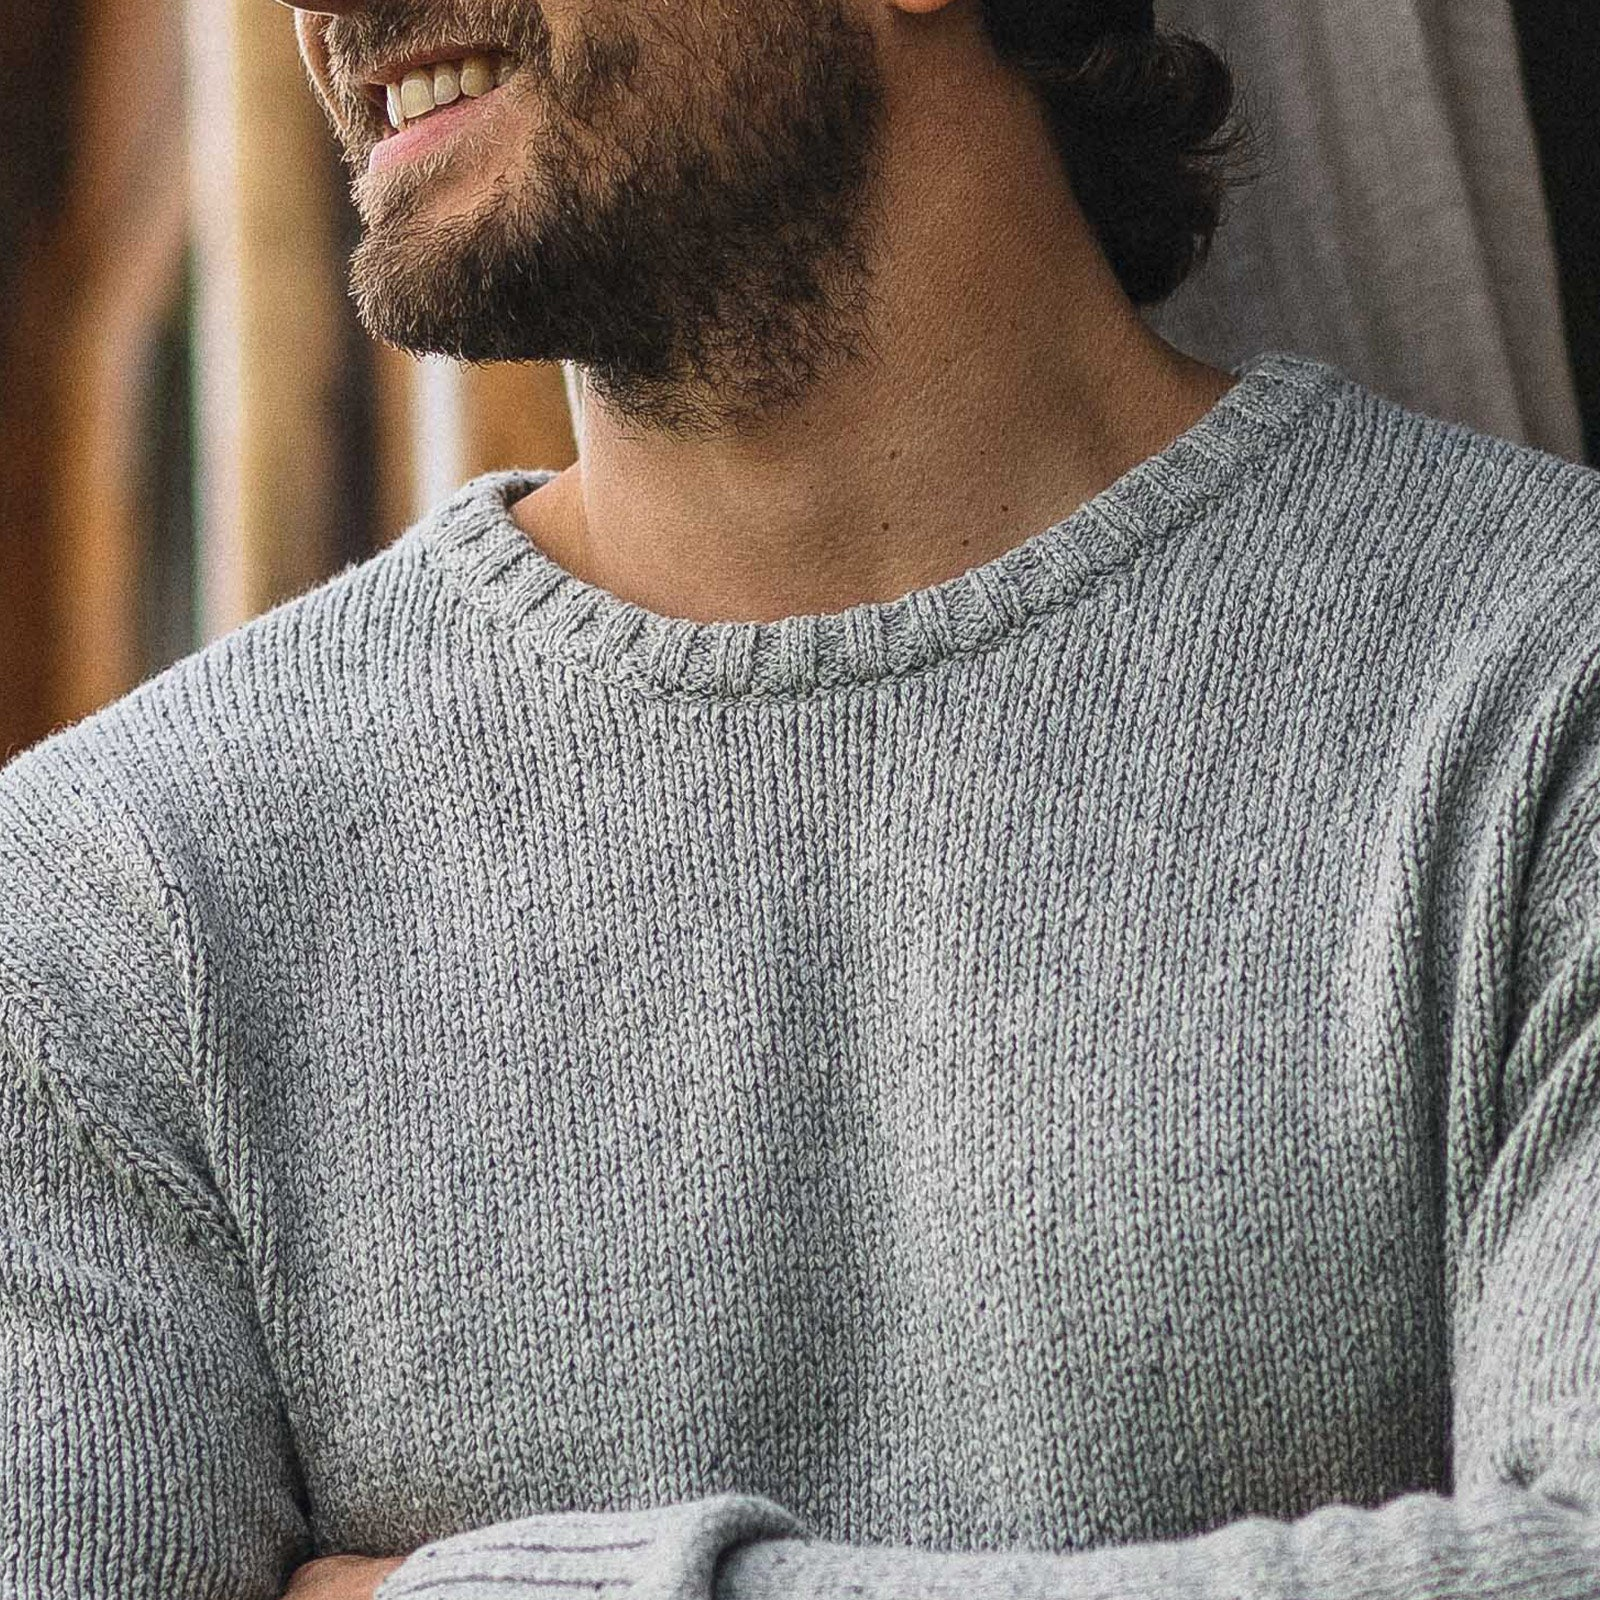 Highbanks Knitwear - Grey Fleck image 7